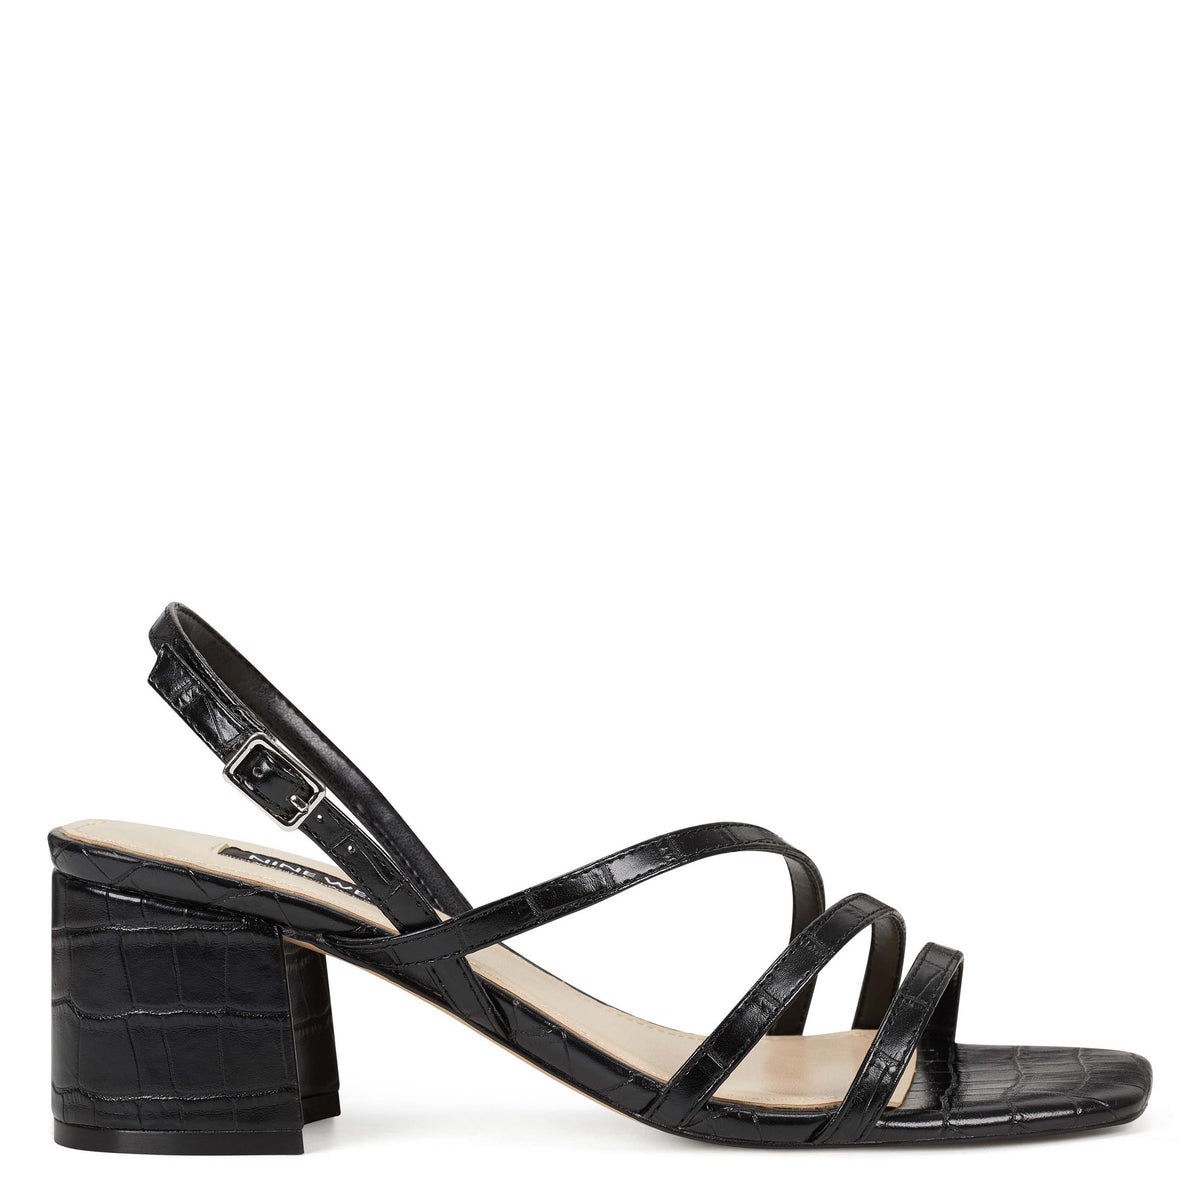 Maeve Block Heel Sandals